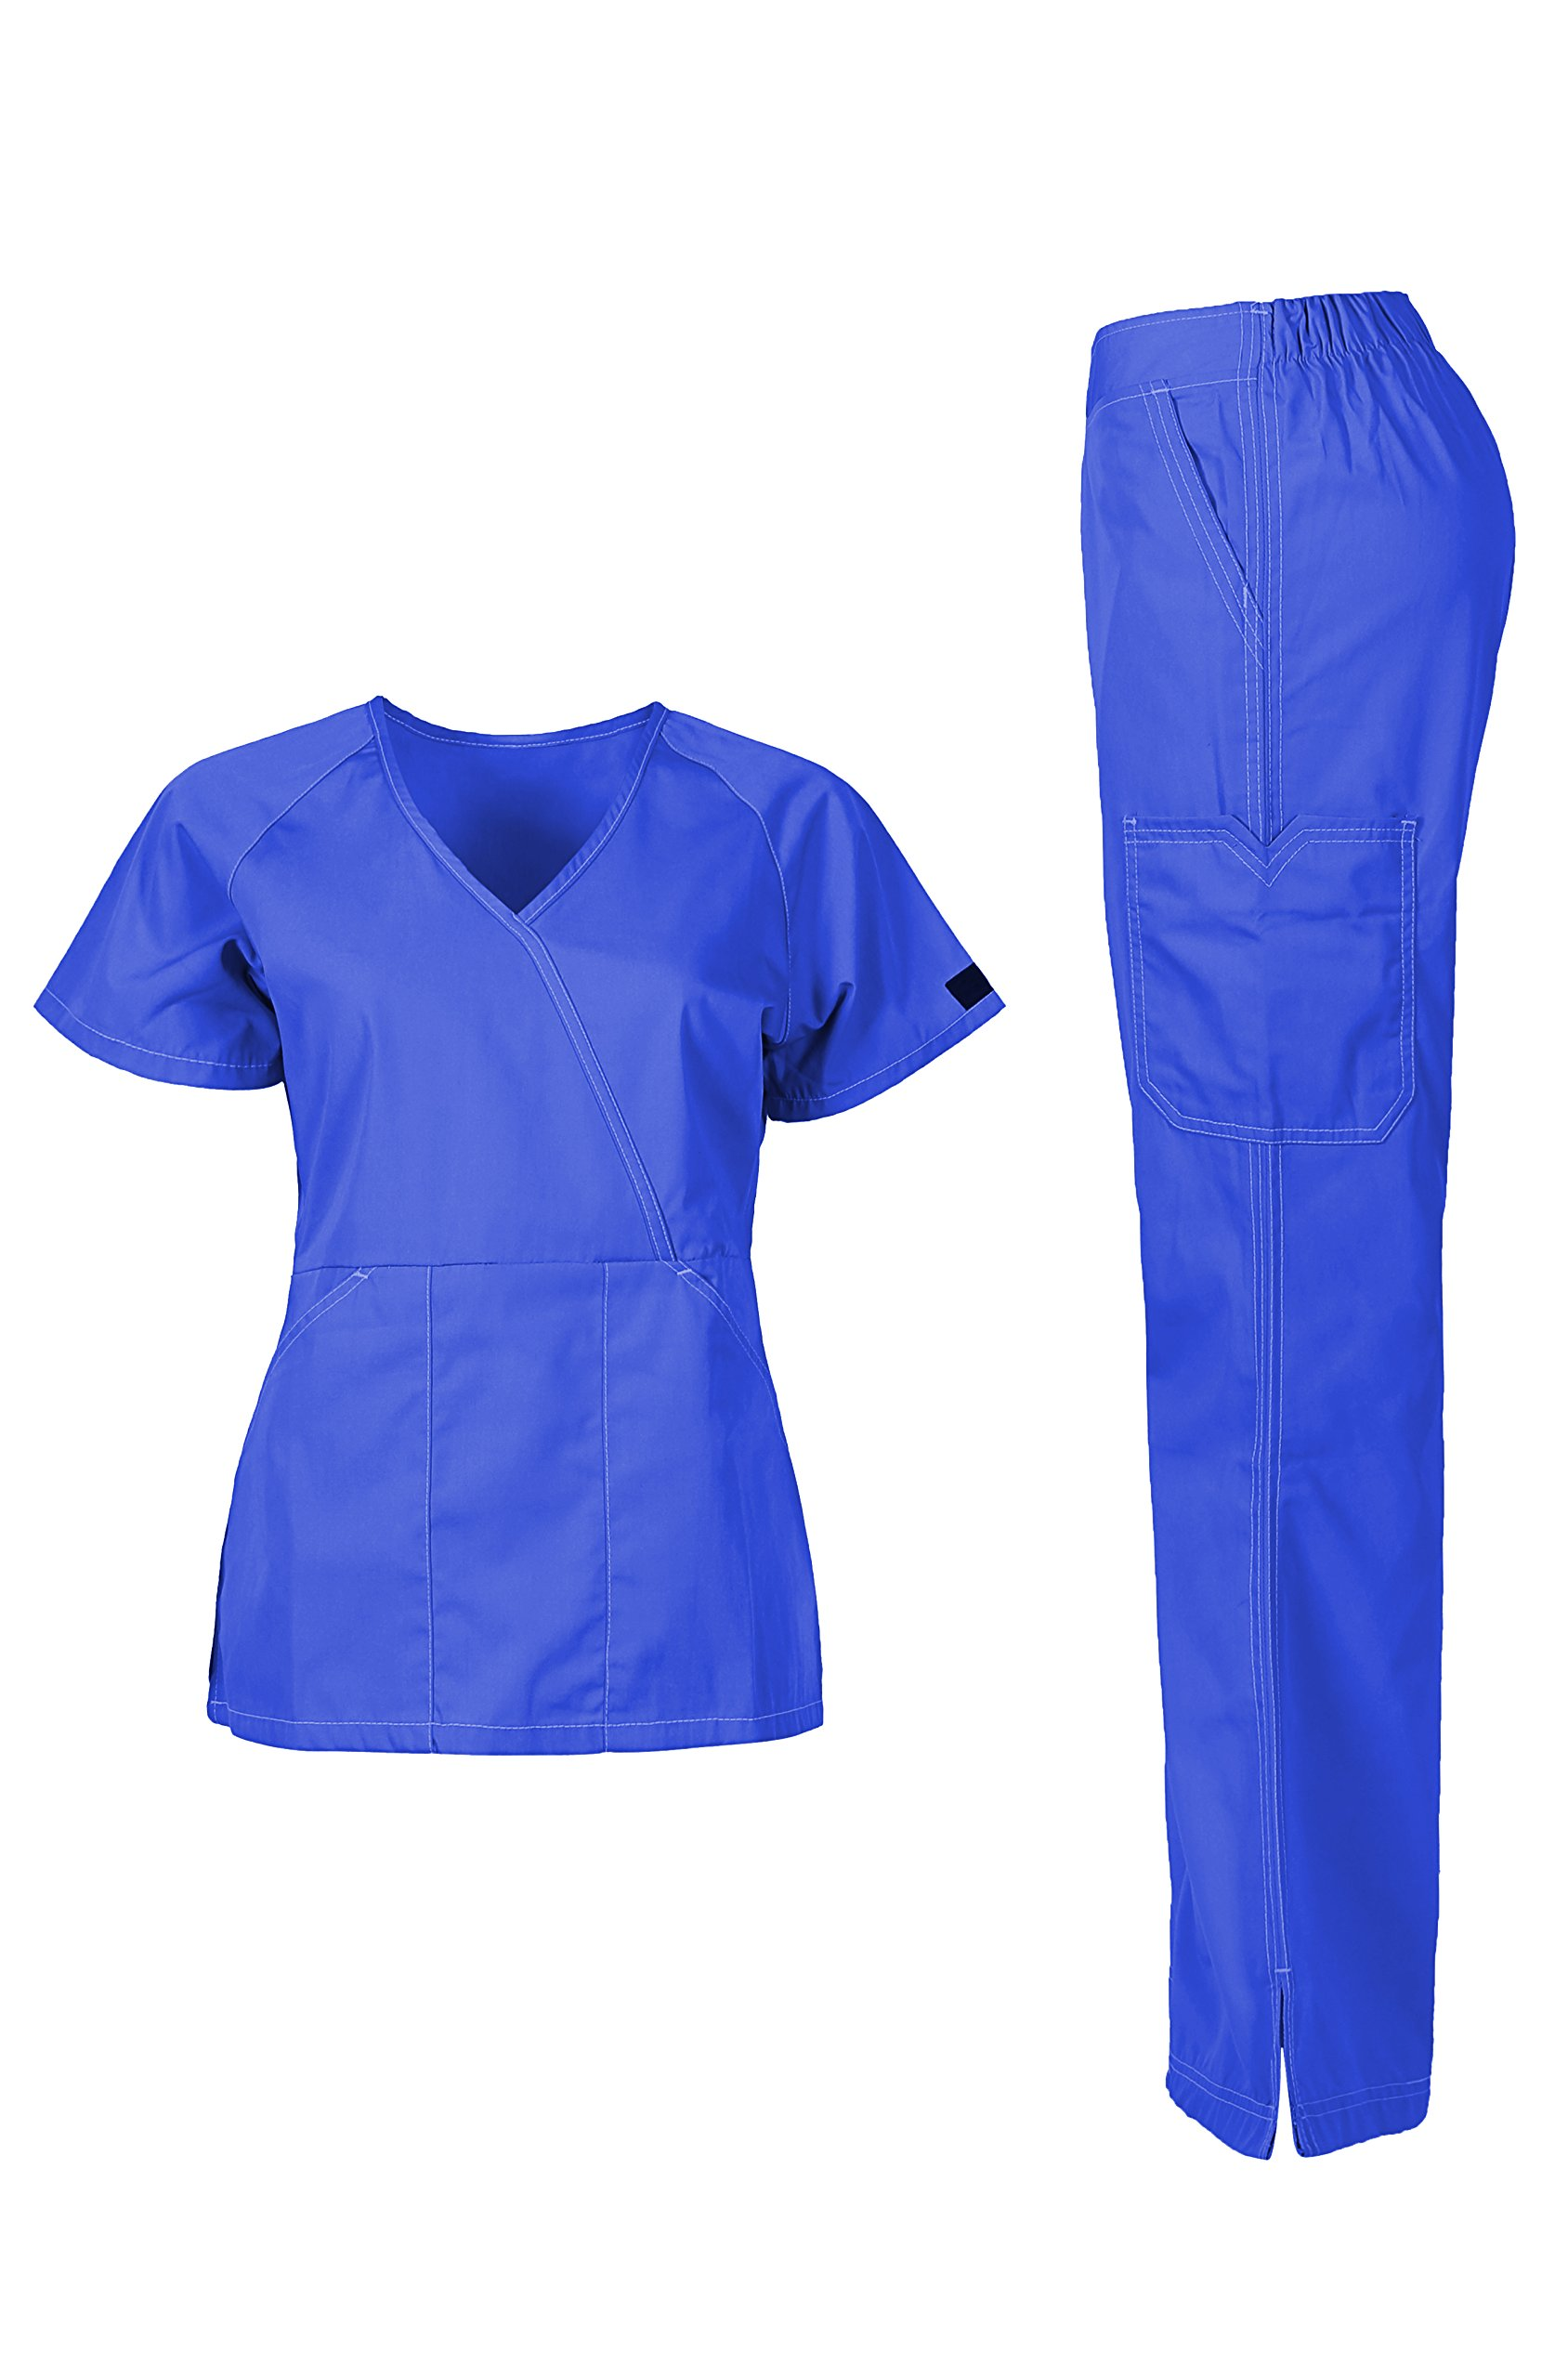 MedPro Women's Medical Scrub Set (Top & Bottom) Royal Blue M (5666)